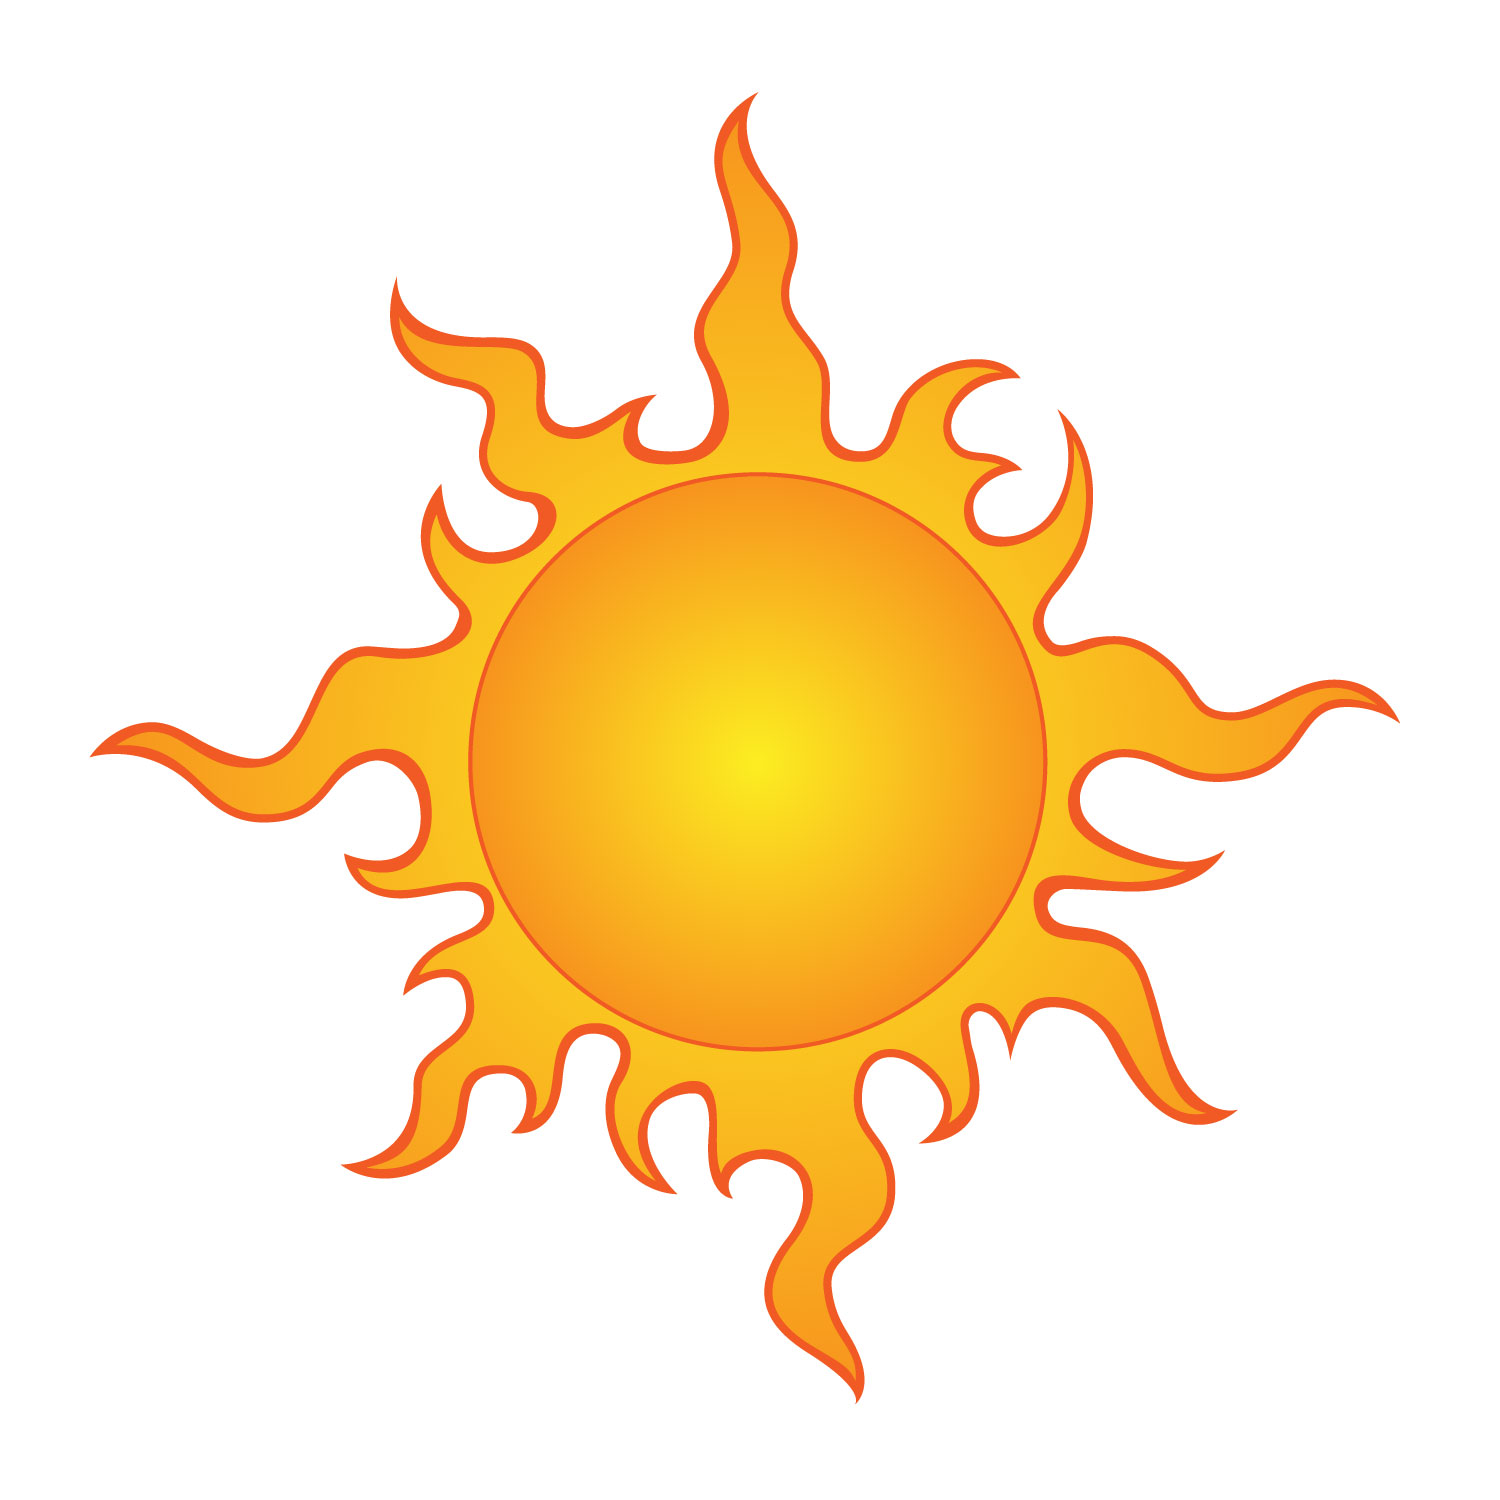 Sun Simple Drawing Simple Sun Motif Clip Art